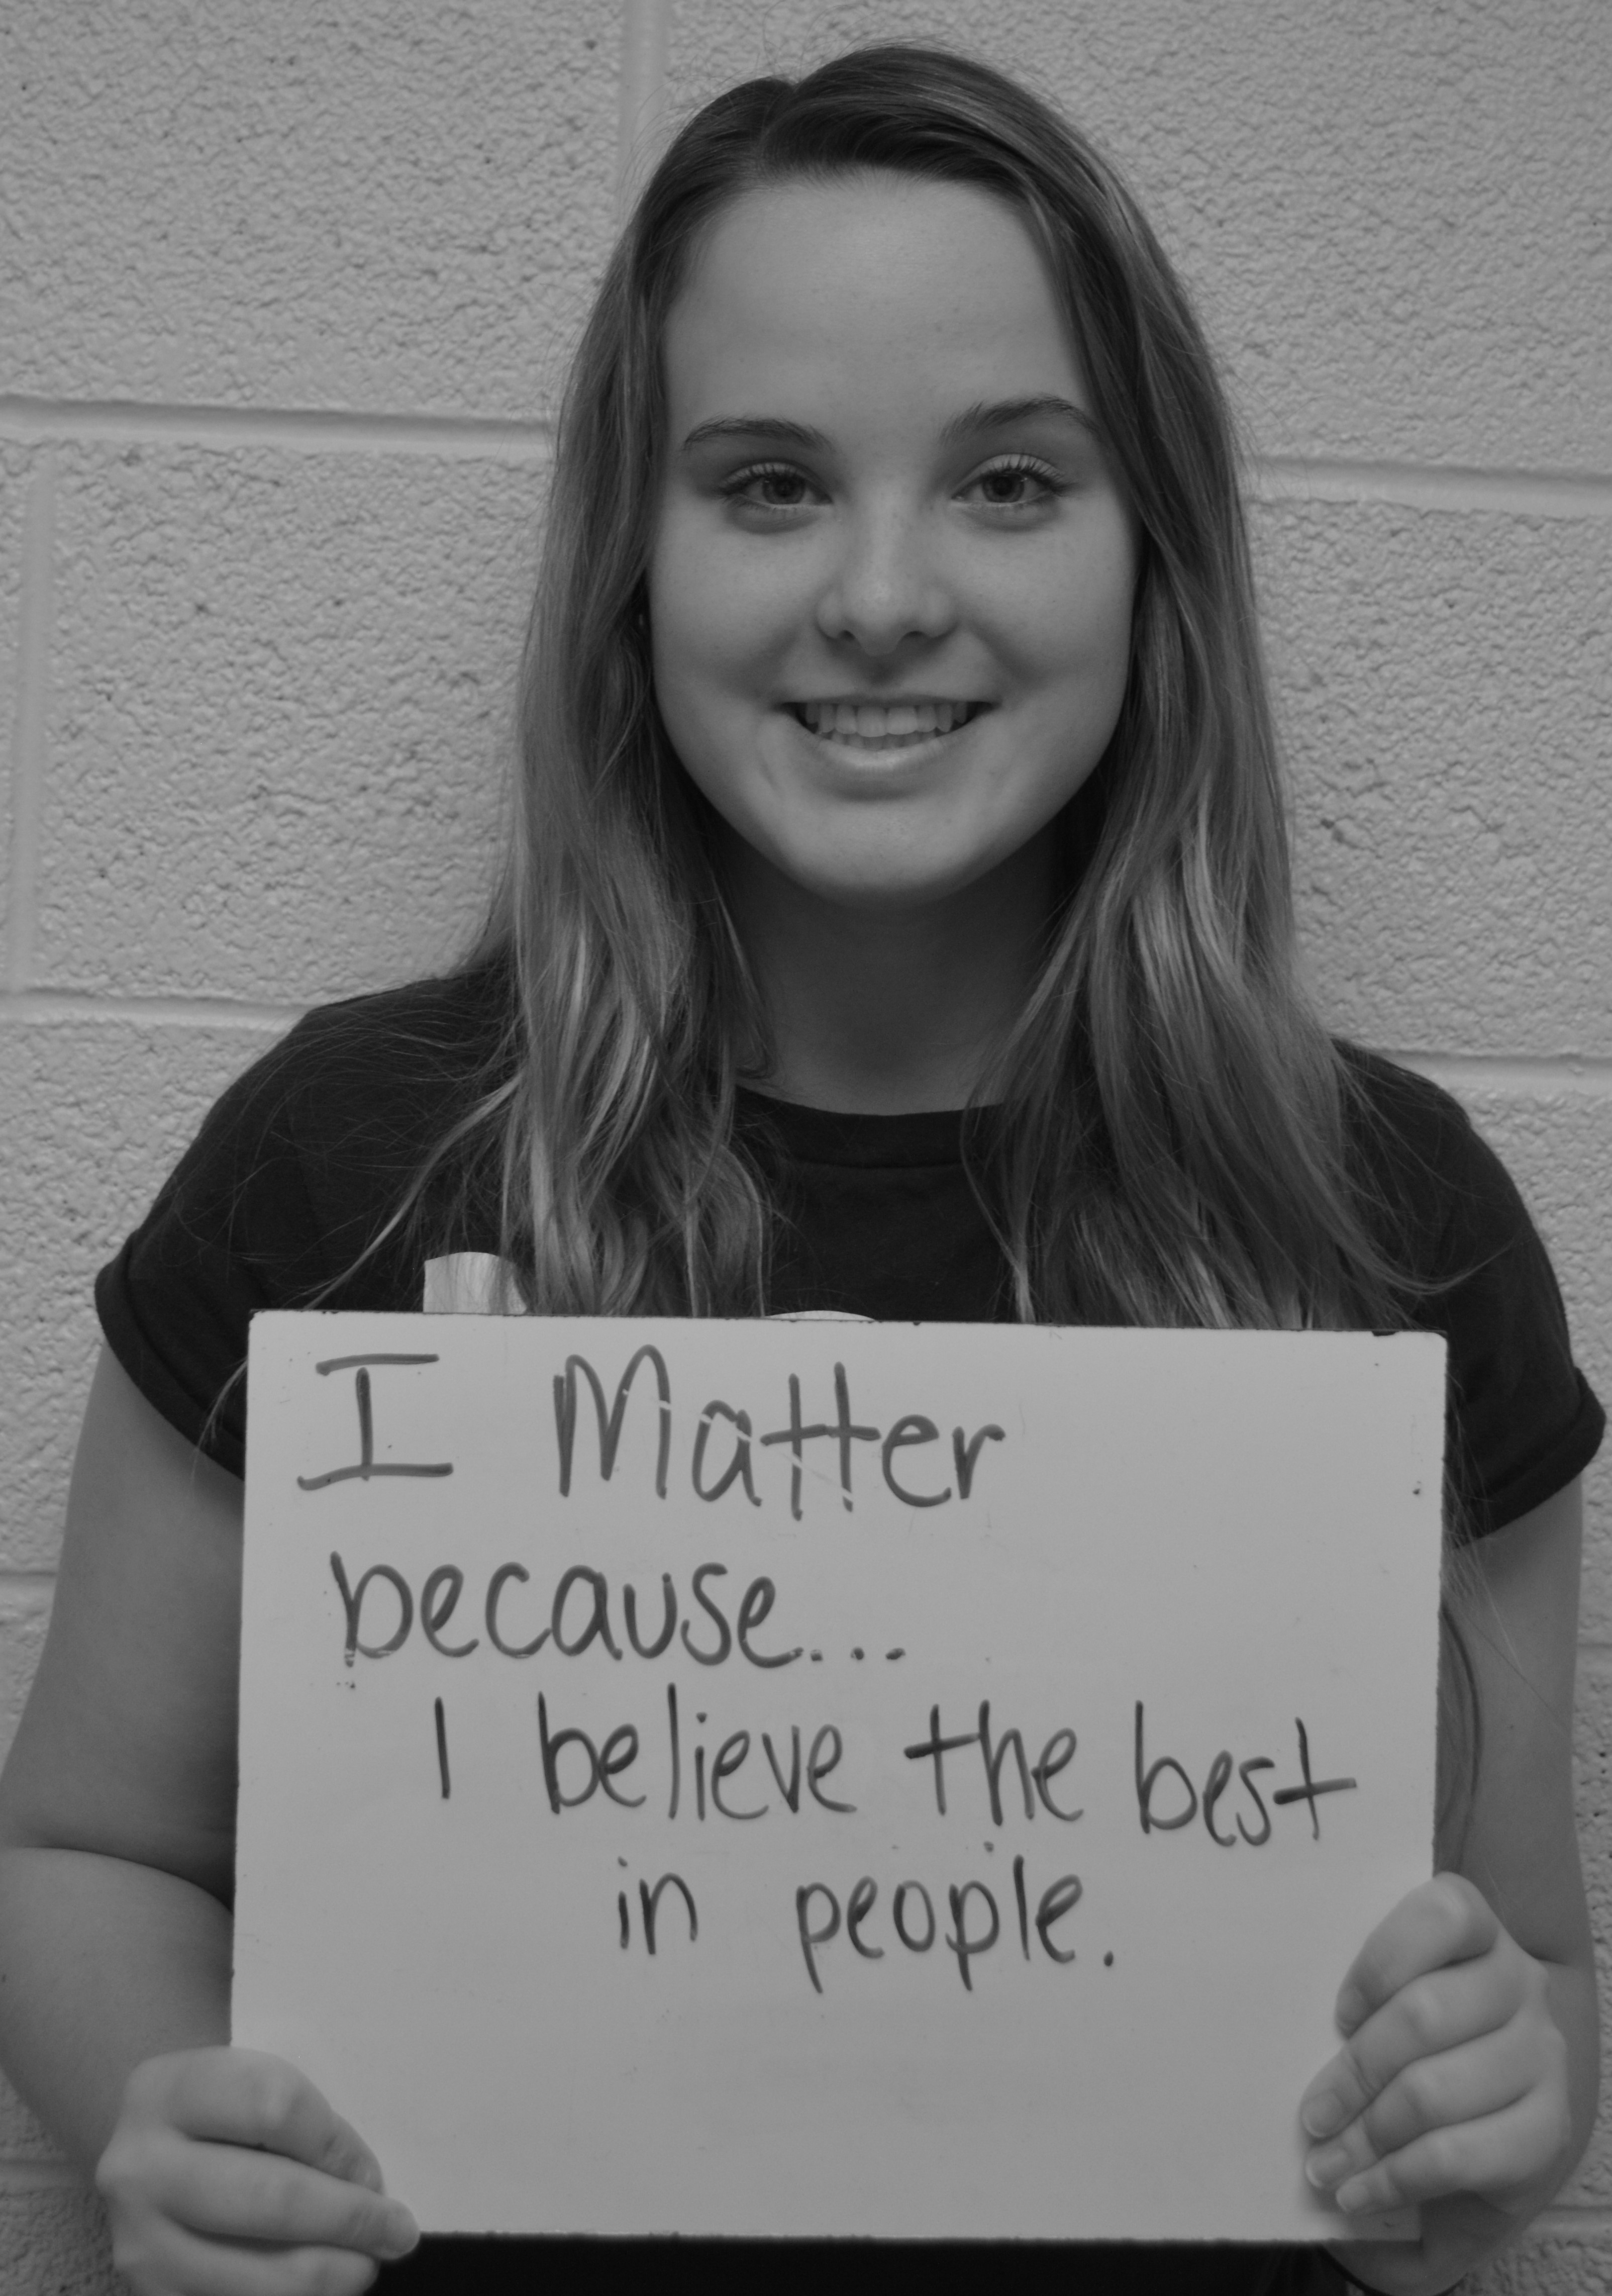 I matter because...I believe in the best in people